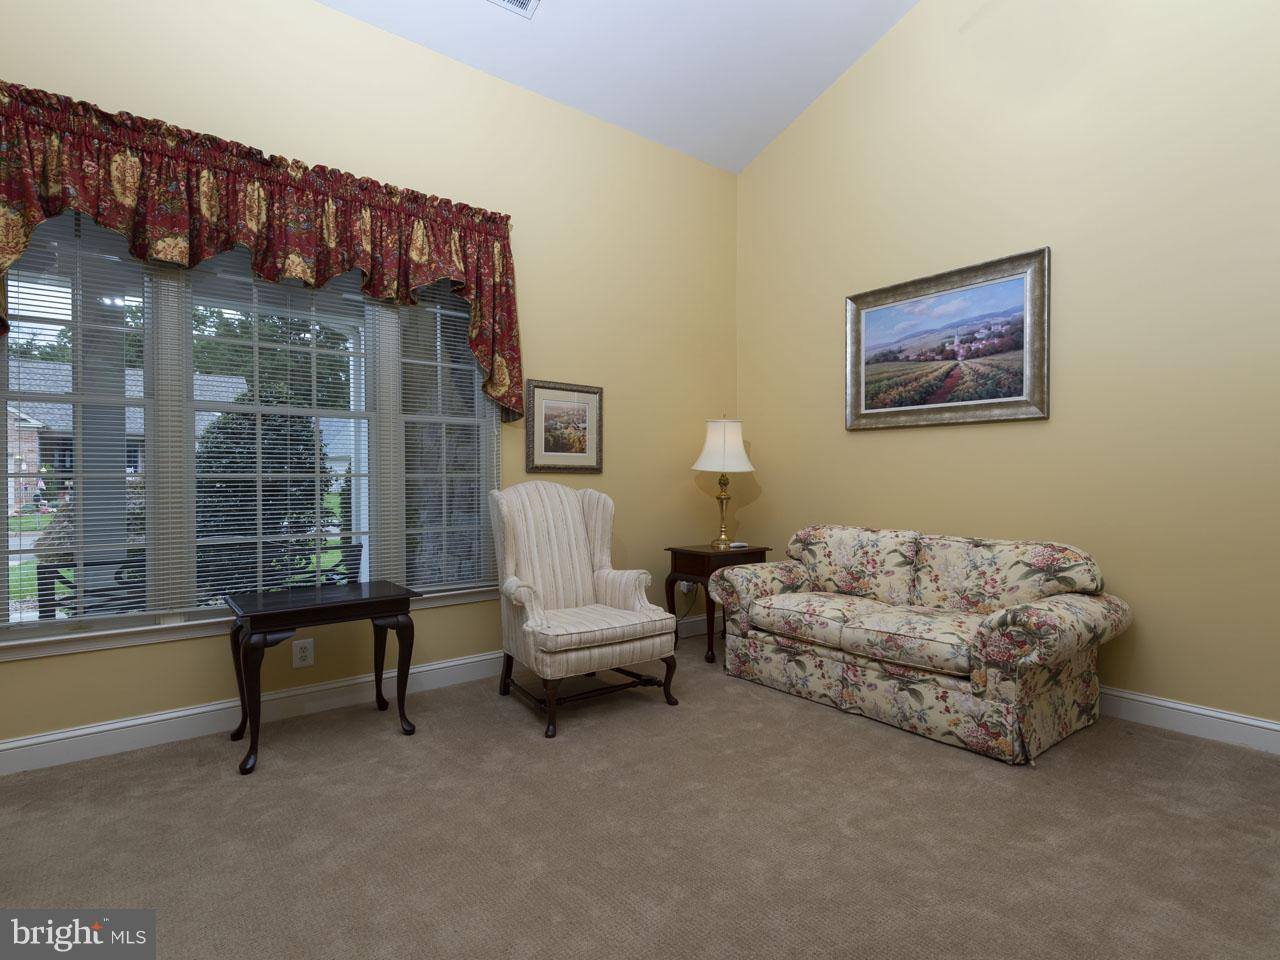 1005040466-300638081540-2021-07-22-06-45-09        Gainesville Delaware Real Estate For Sale   MLS# 1005040466  - Best of Northern Virginia